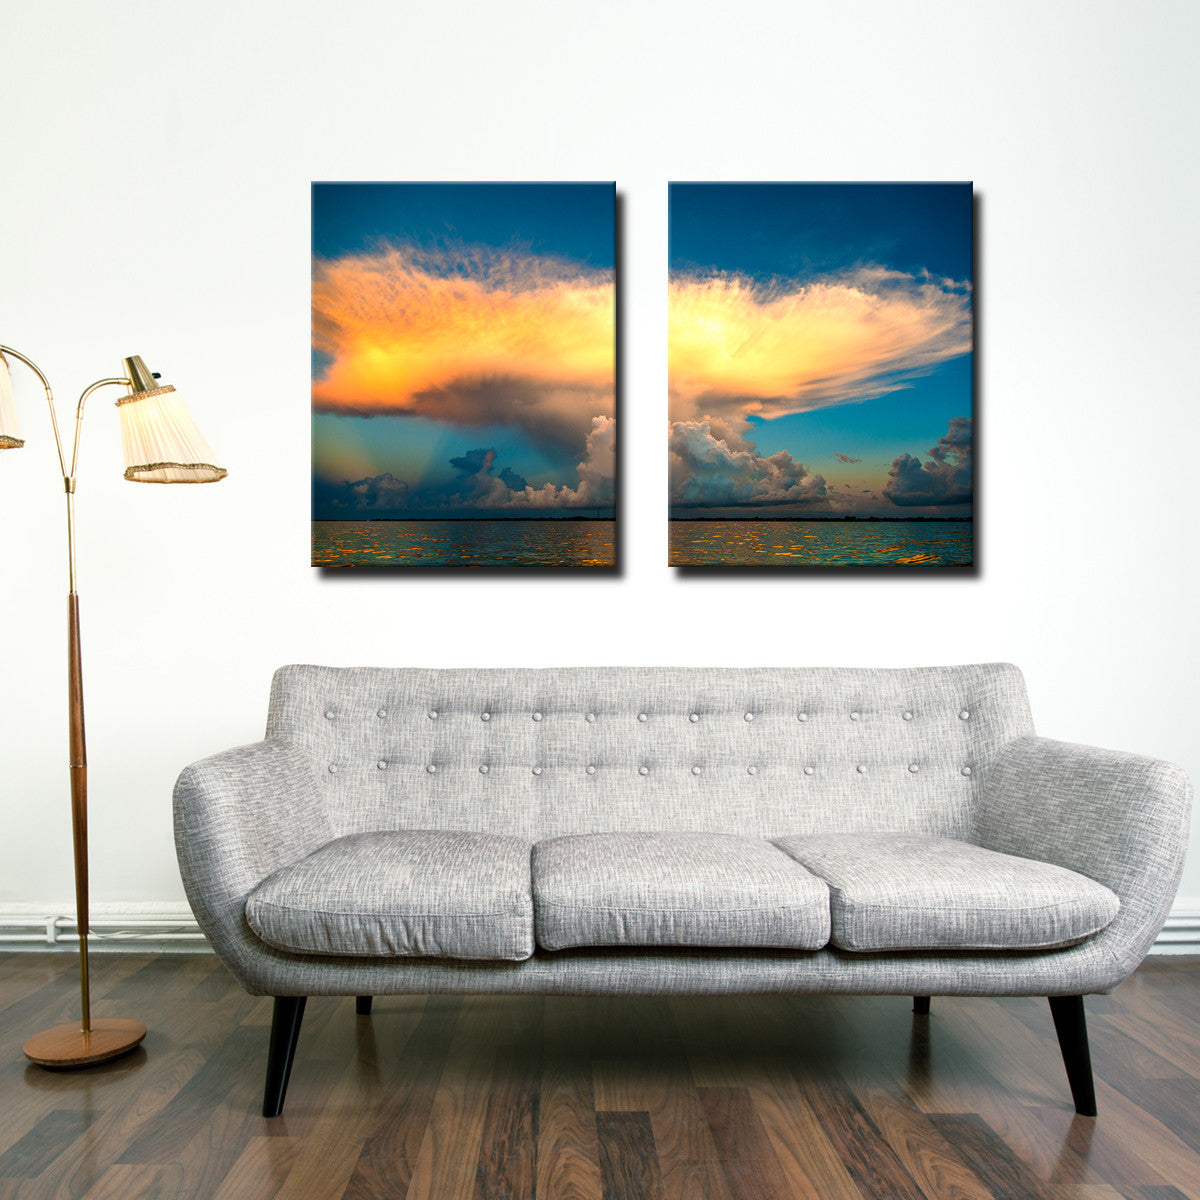 Bruce Bain 'Golden Cloud' Canvas Wall Art